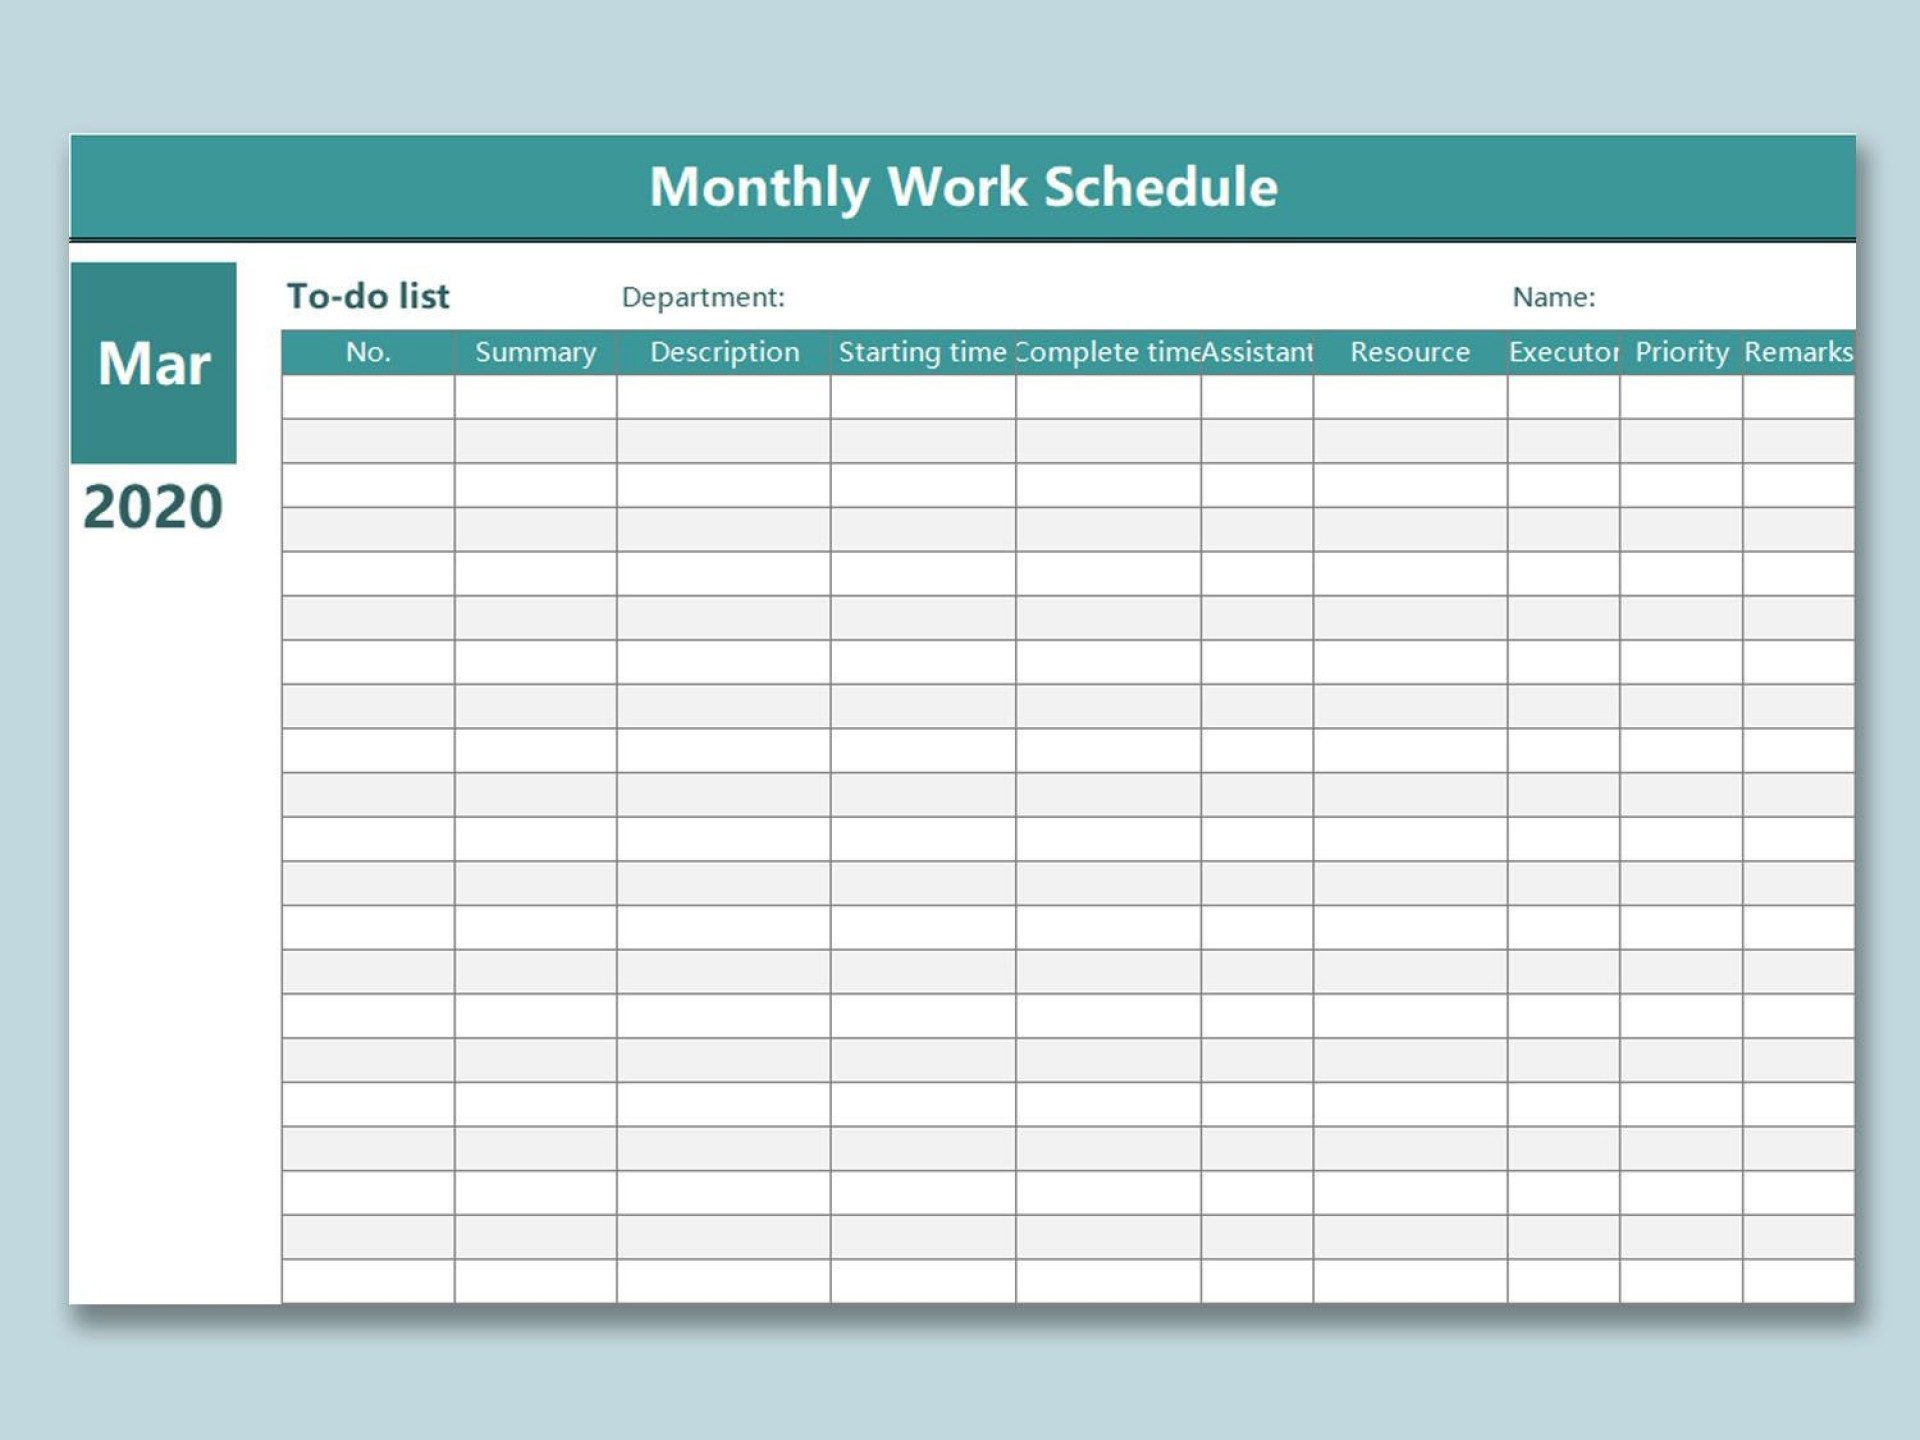 004 Shocking Free Employee Scheduling Template High Resolution  Templates Weekly Work Schedule Printable Training Plan Excel1920